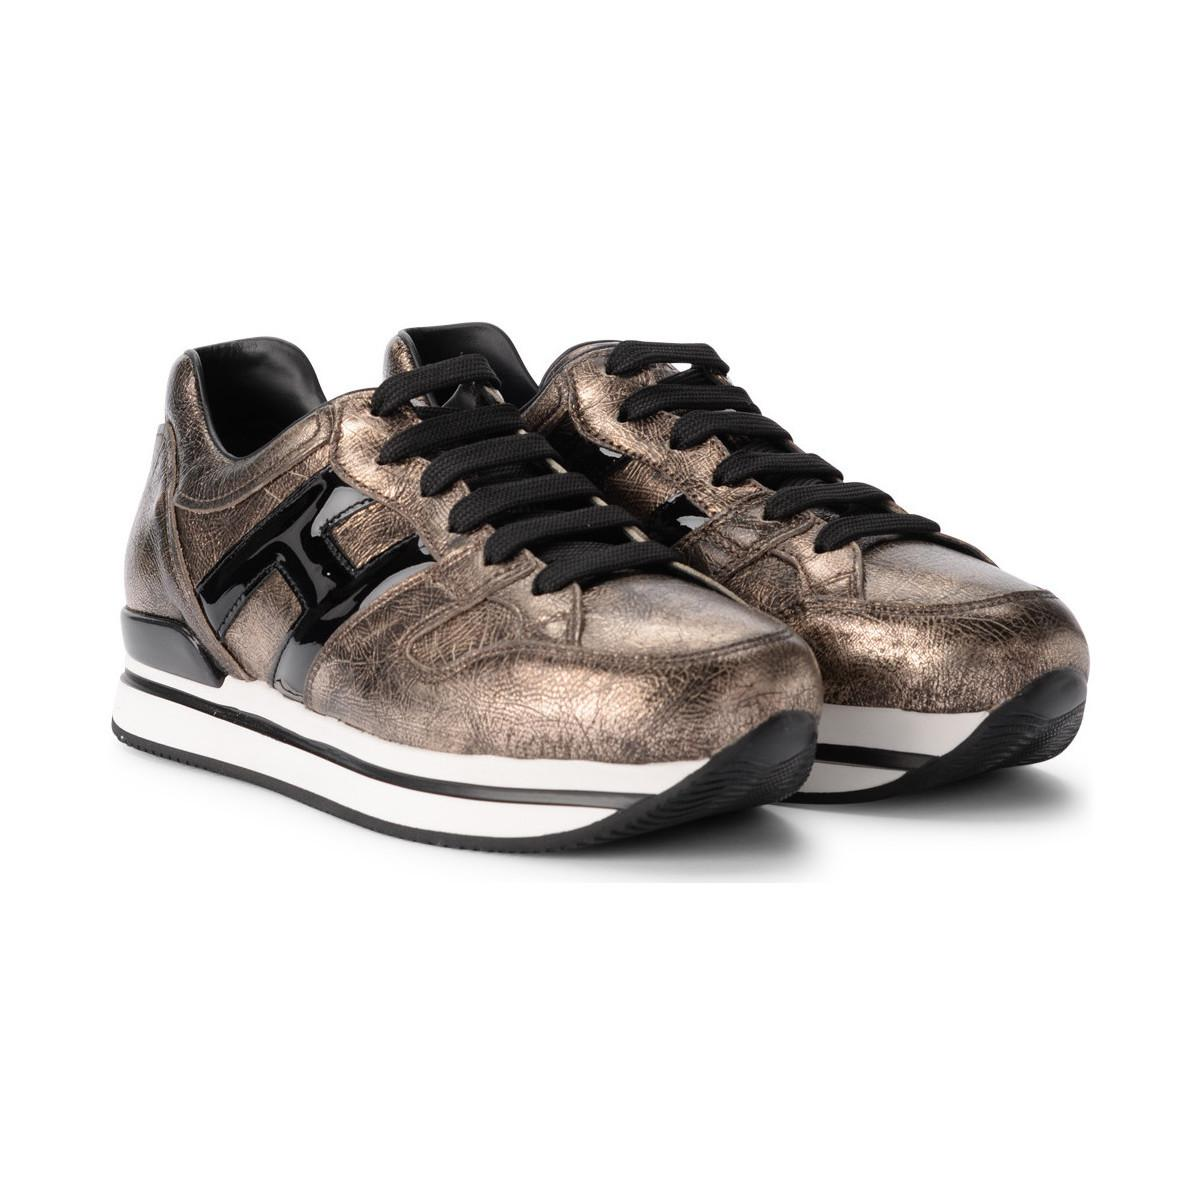 3d9ff5a2e5043e Hogan H222 Pale Golden Leather And Black Patent Leather Sneaker ...